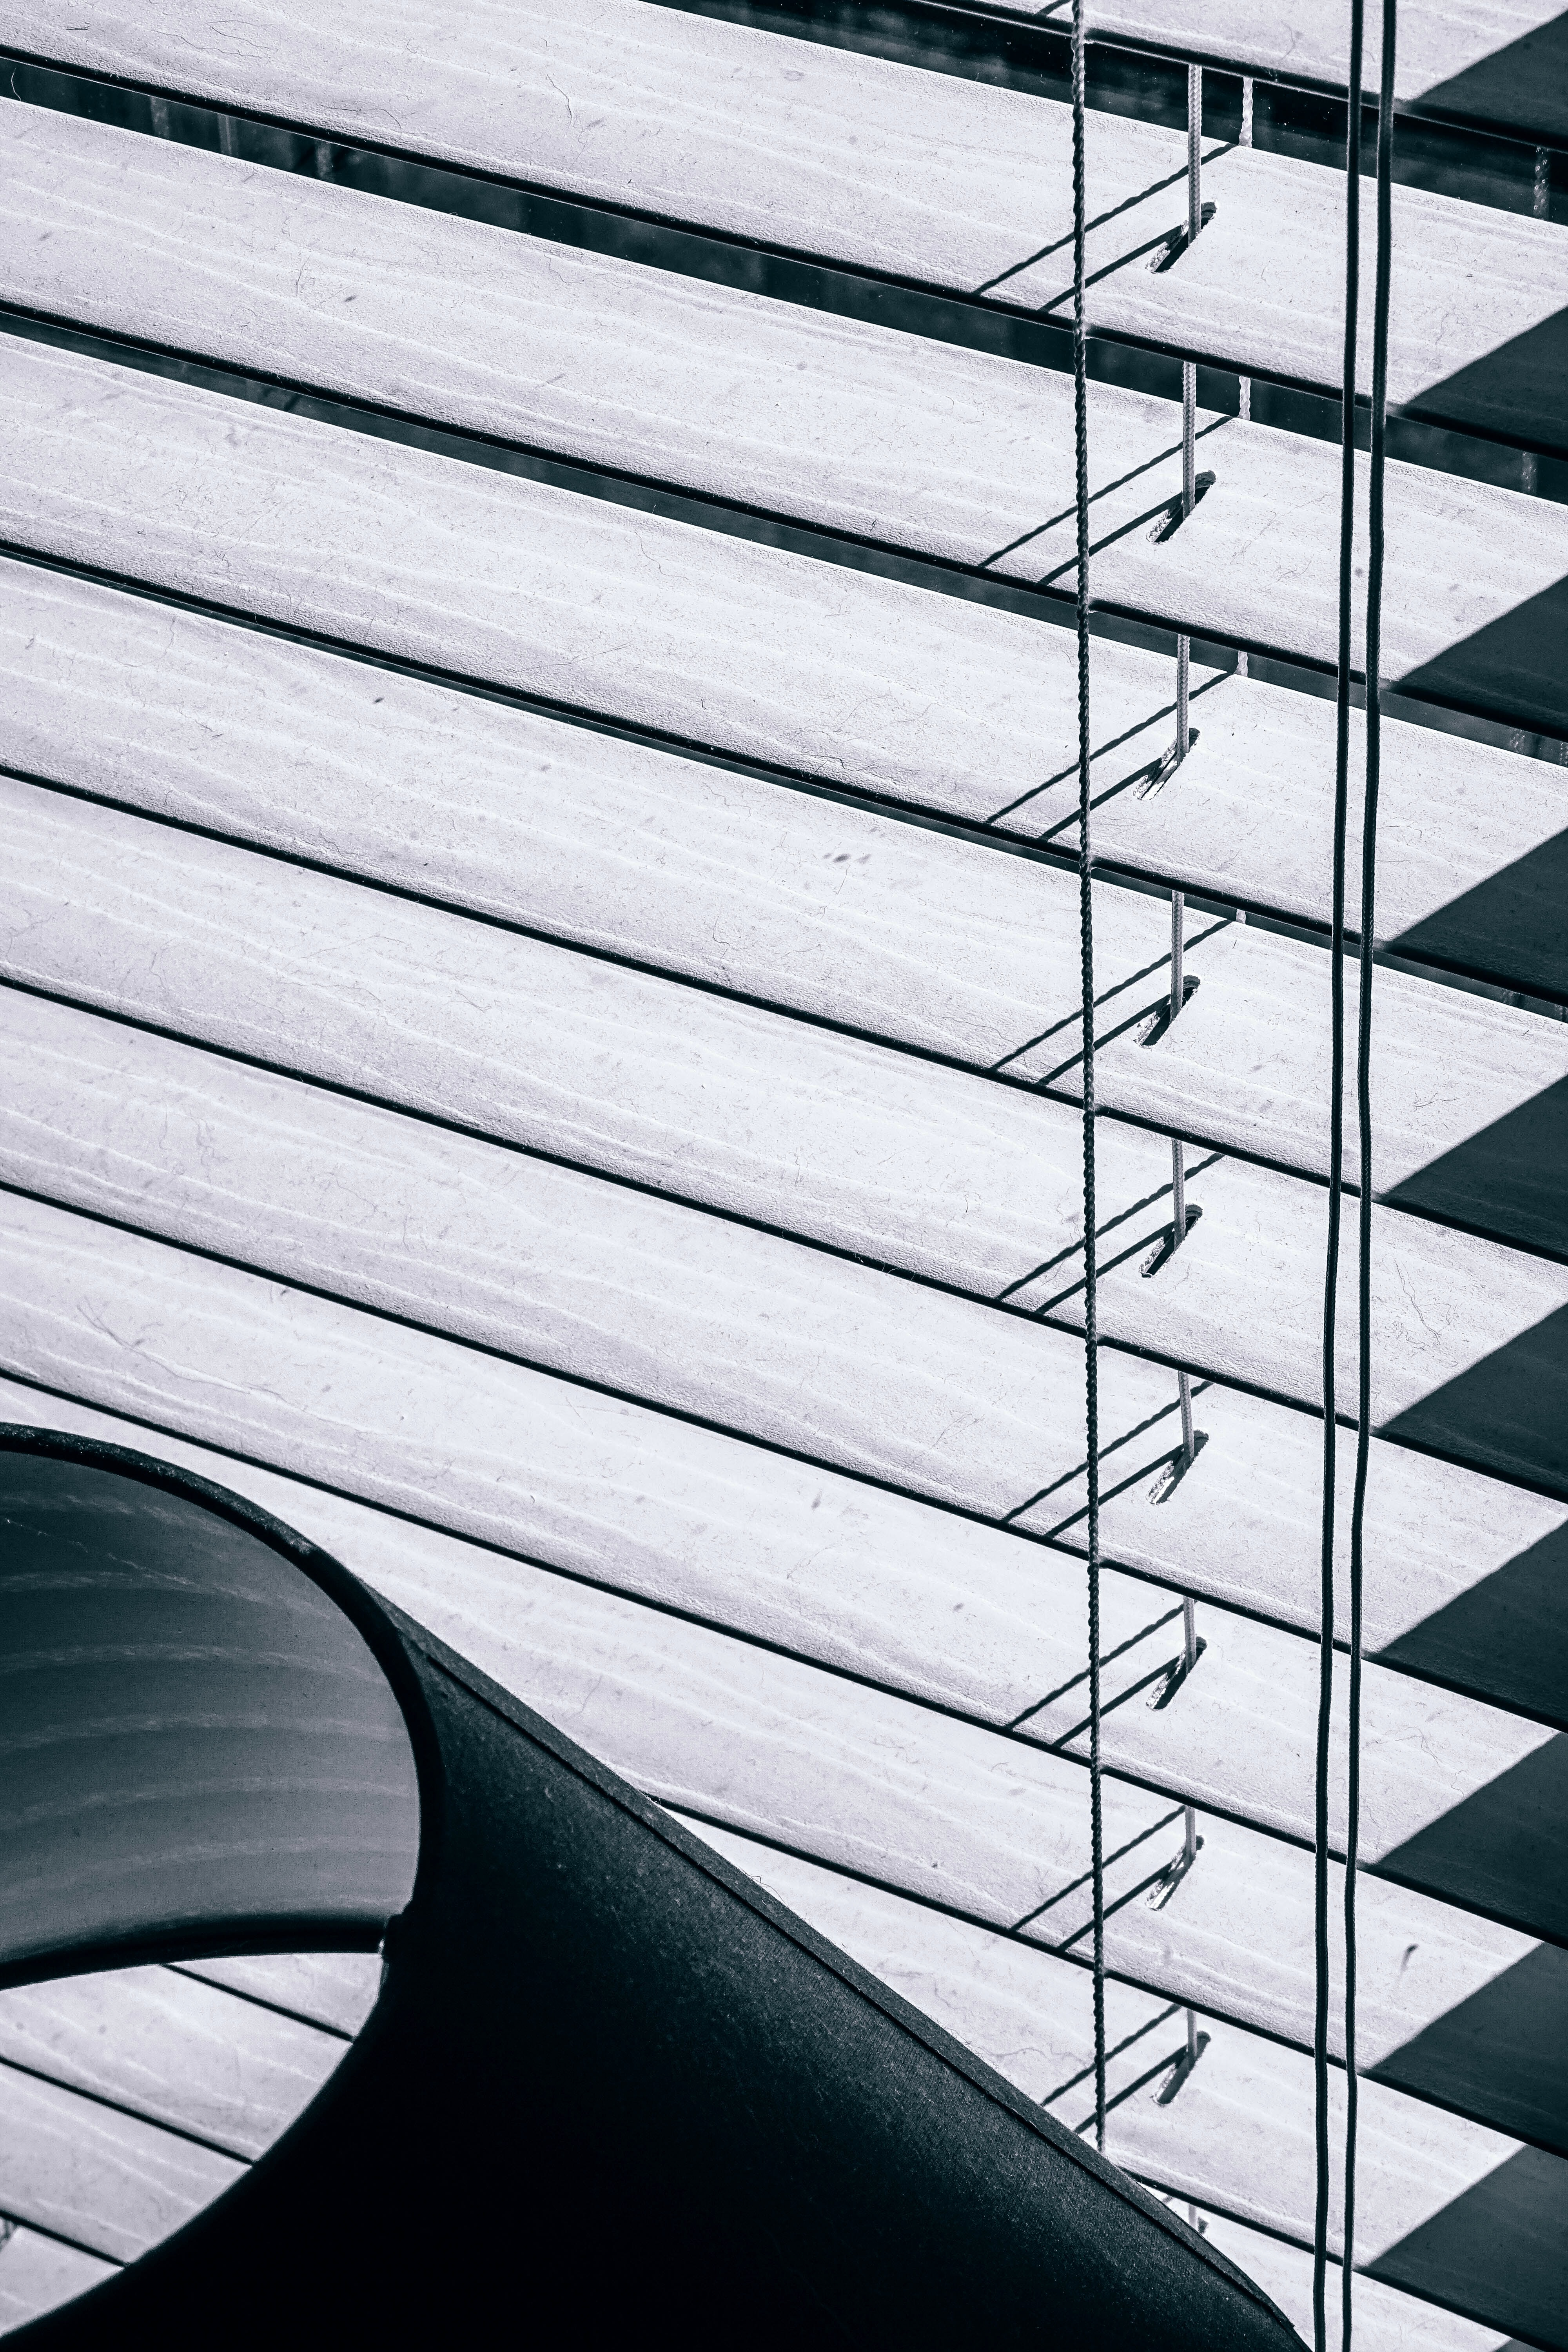 Close-up of dusty shutter blinds